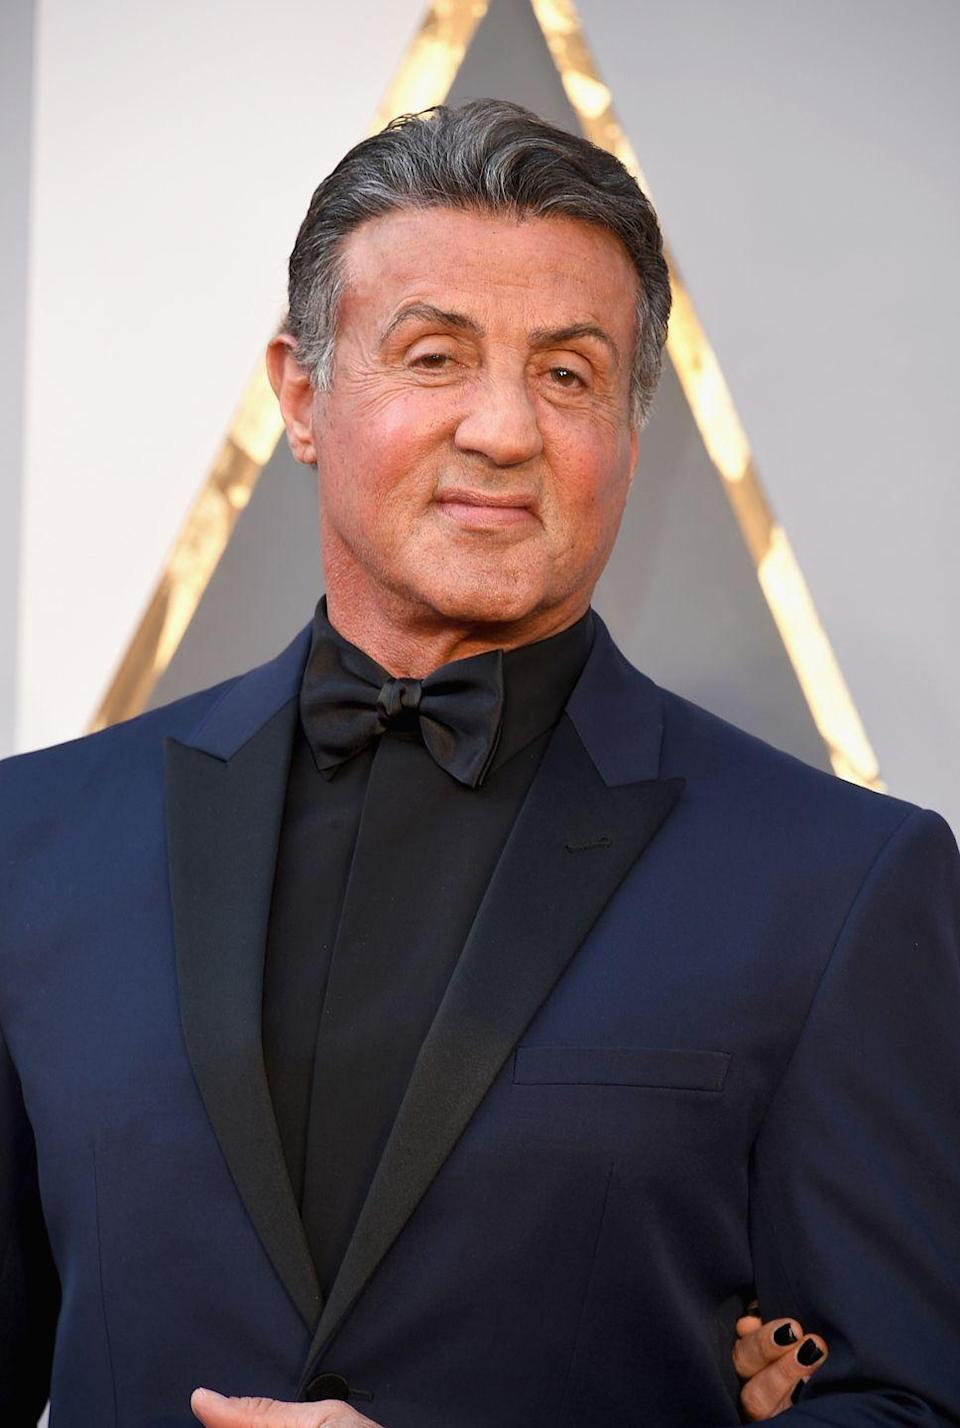 "<p>The iconic actor known for his roles in <em>Rocky</em> talked to <em><a href=""https://www.gq.com/story/sylvester-stallone-comedy-star"" rel=""nofollow noopener"" target=""_blank"" data-ylk=""slk:GQ"" class=""link rapid-noclick-resp"">GQ</a> </em>about the 1992 comedy which was,""maybe one of the worst films in the entire solar system, including alien productions we've never seen."" </p>"